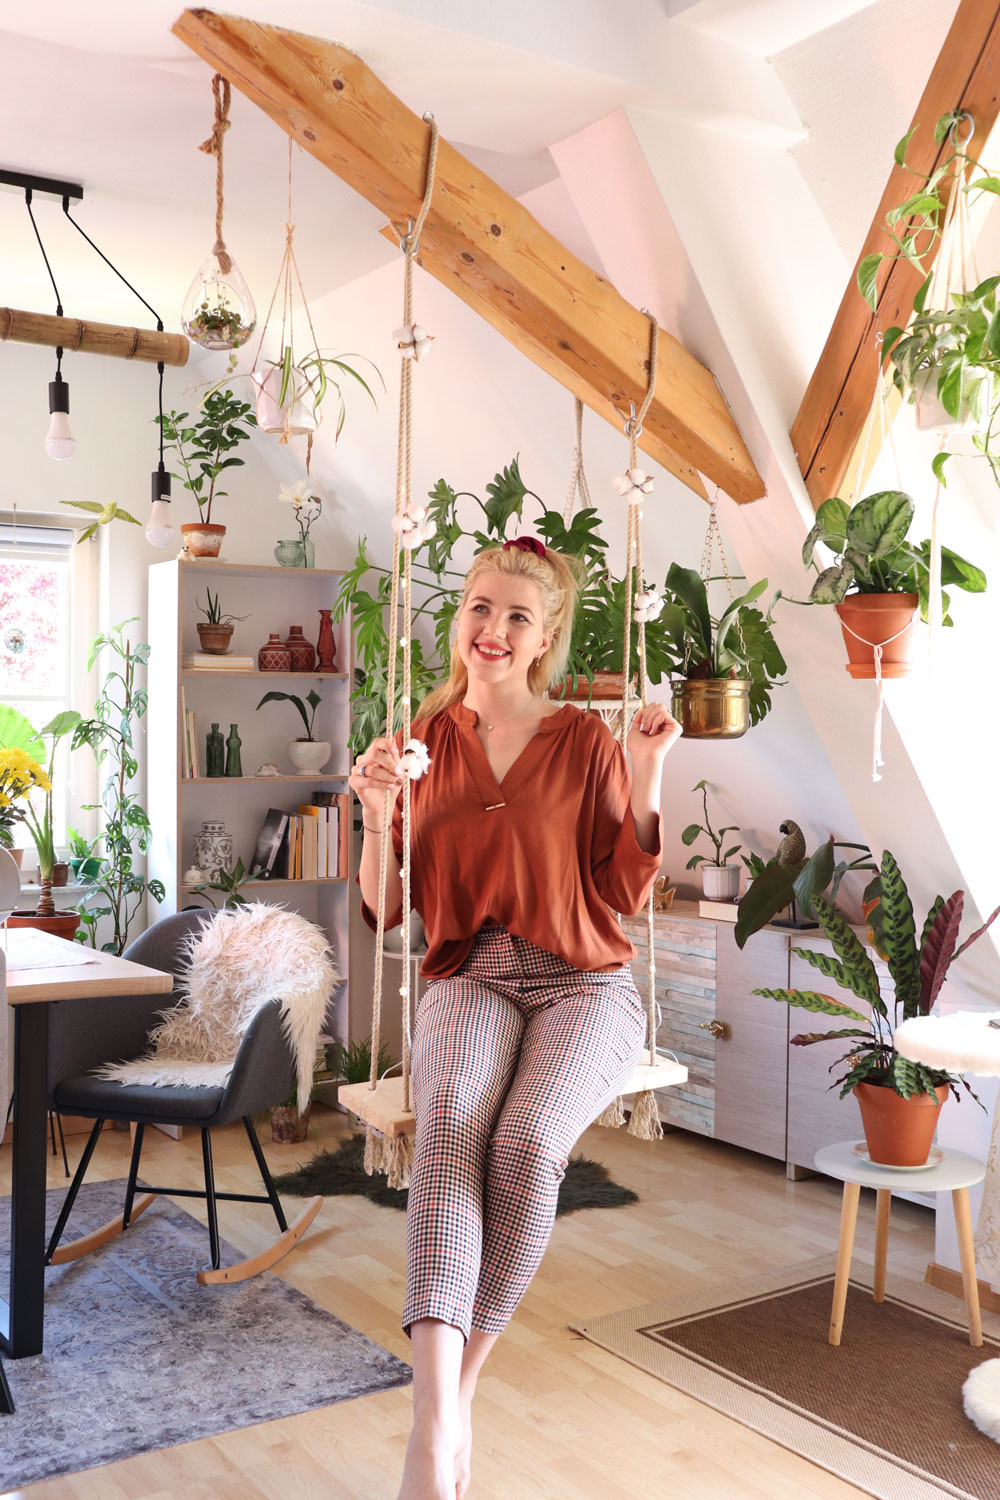 Kristina-Kizilboya-fagusurban-swinging-on-her-DIY-swing-in-her-own-apartment